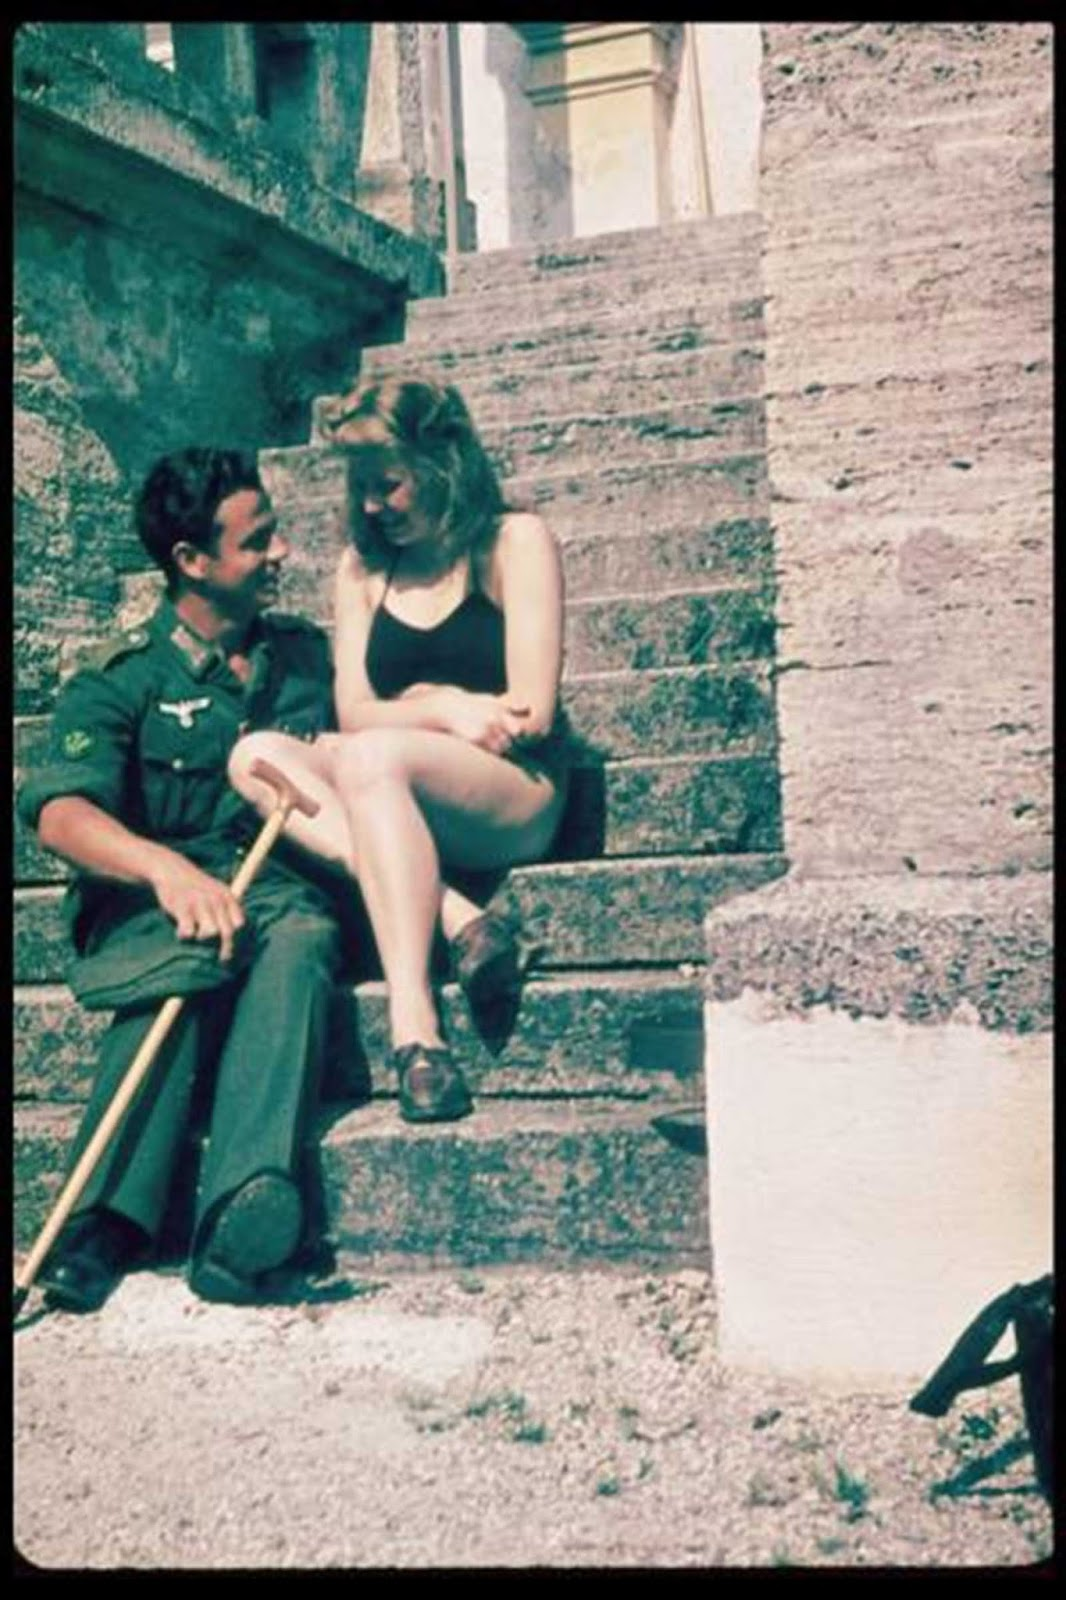 Rare color selfie of a Wehrmacht soldier and his girl. His cane suggests that he was recuperating from a war wound, rear area hospitals were one of the few times a soldier could relax and have a little fun.